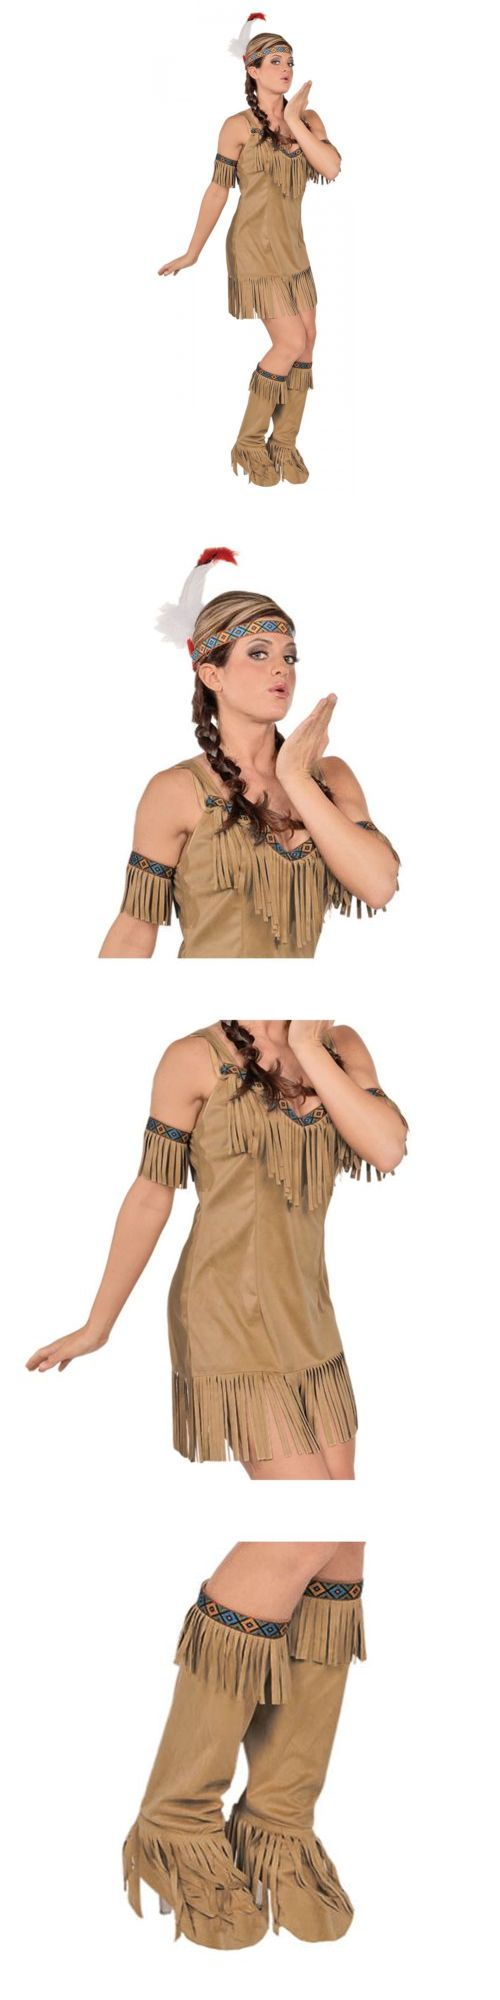 Women Costumes: Native Princess Pocahontas Indian Girl Costume Halloween Fancy Dress -> BUY IT NOW ONLY: $22.69 on eBay!